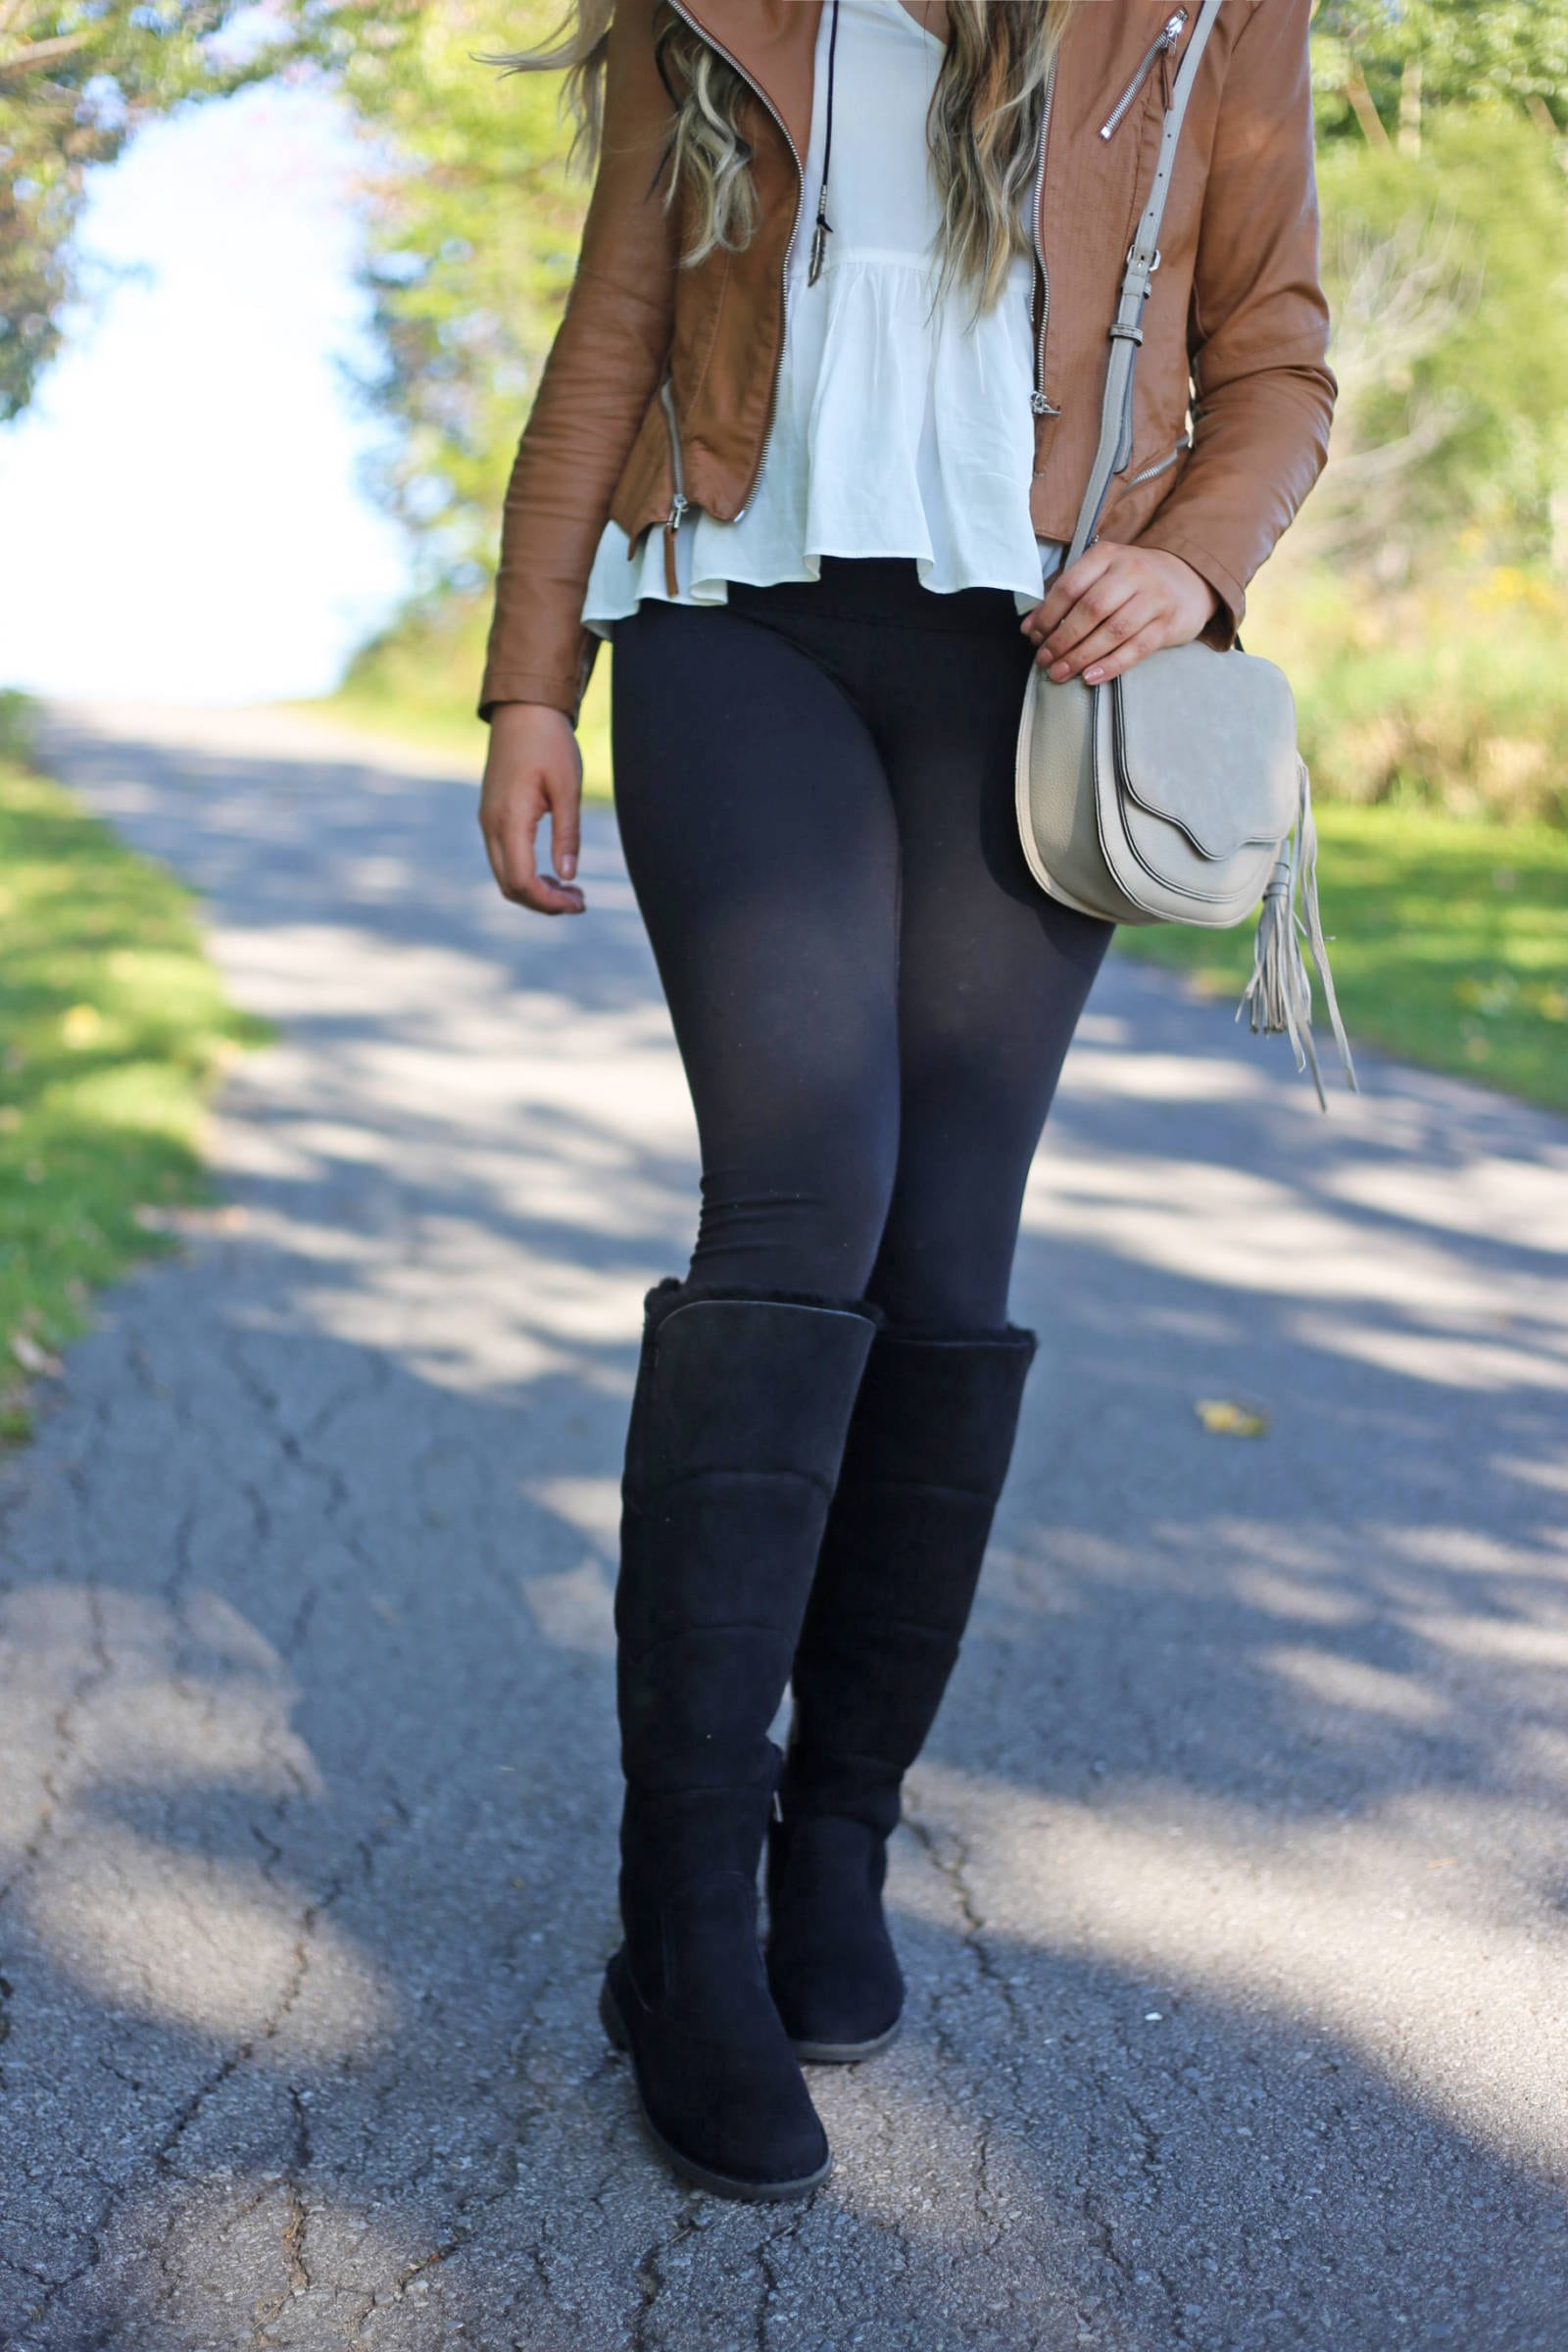 new boots to stay warm this winter | cold weather boots | comfortable boots | Mash Elle beauty blogger | moto jacket faux leather